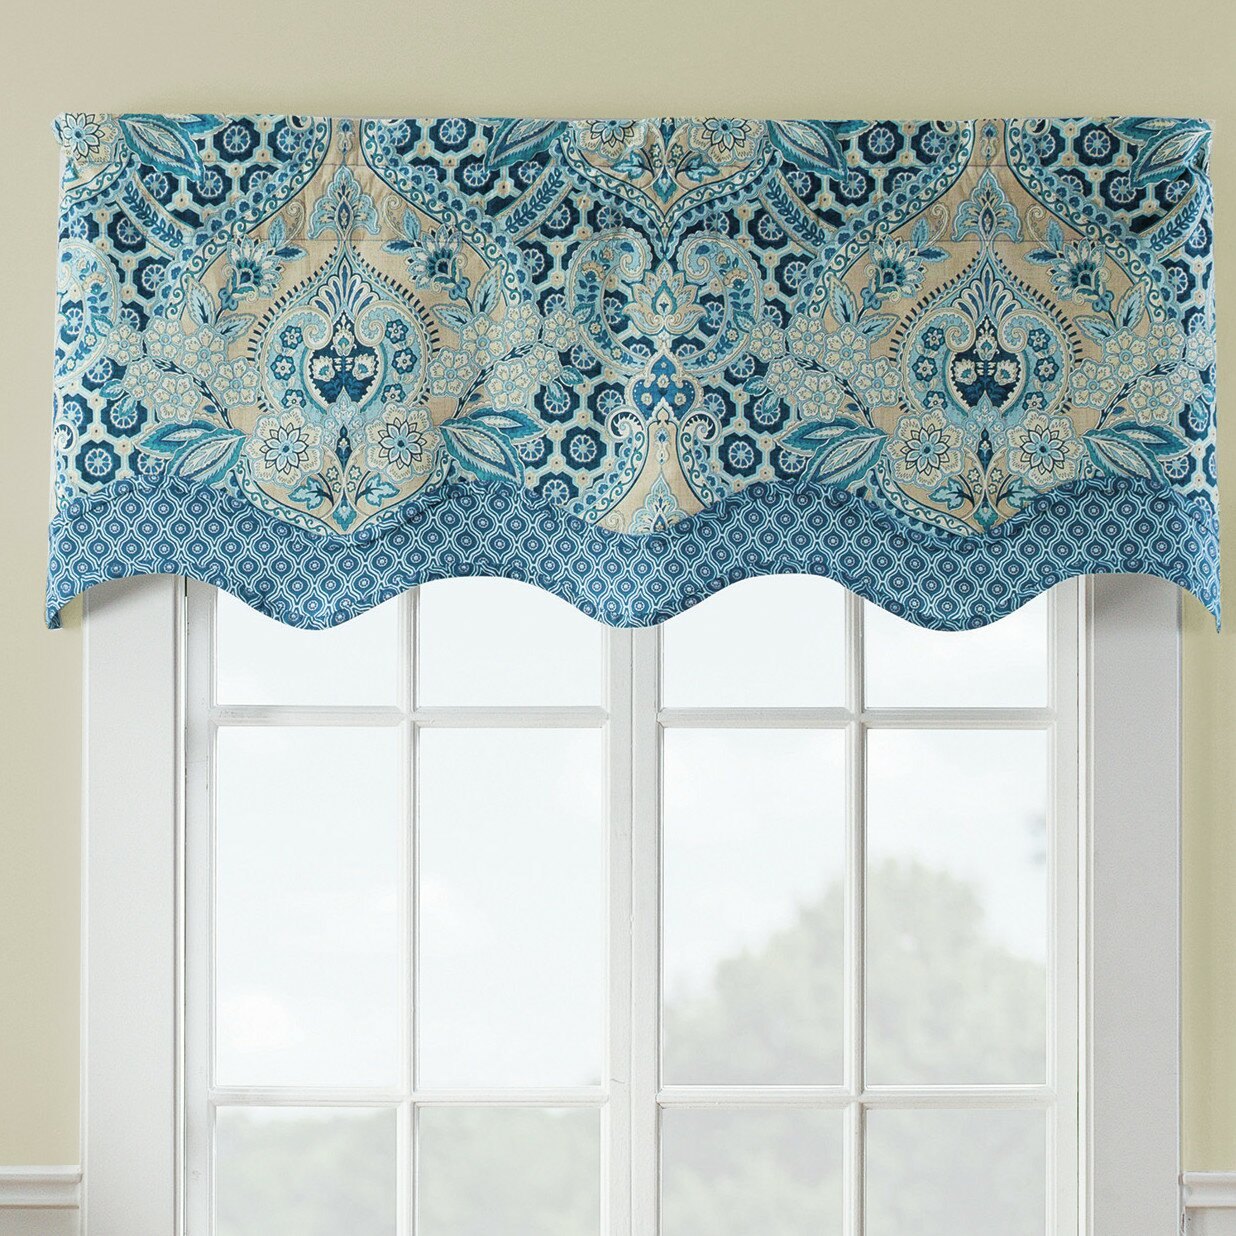 Curtain Valances For Bedrooms